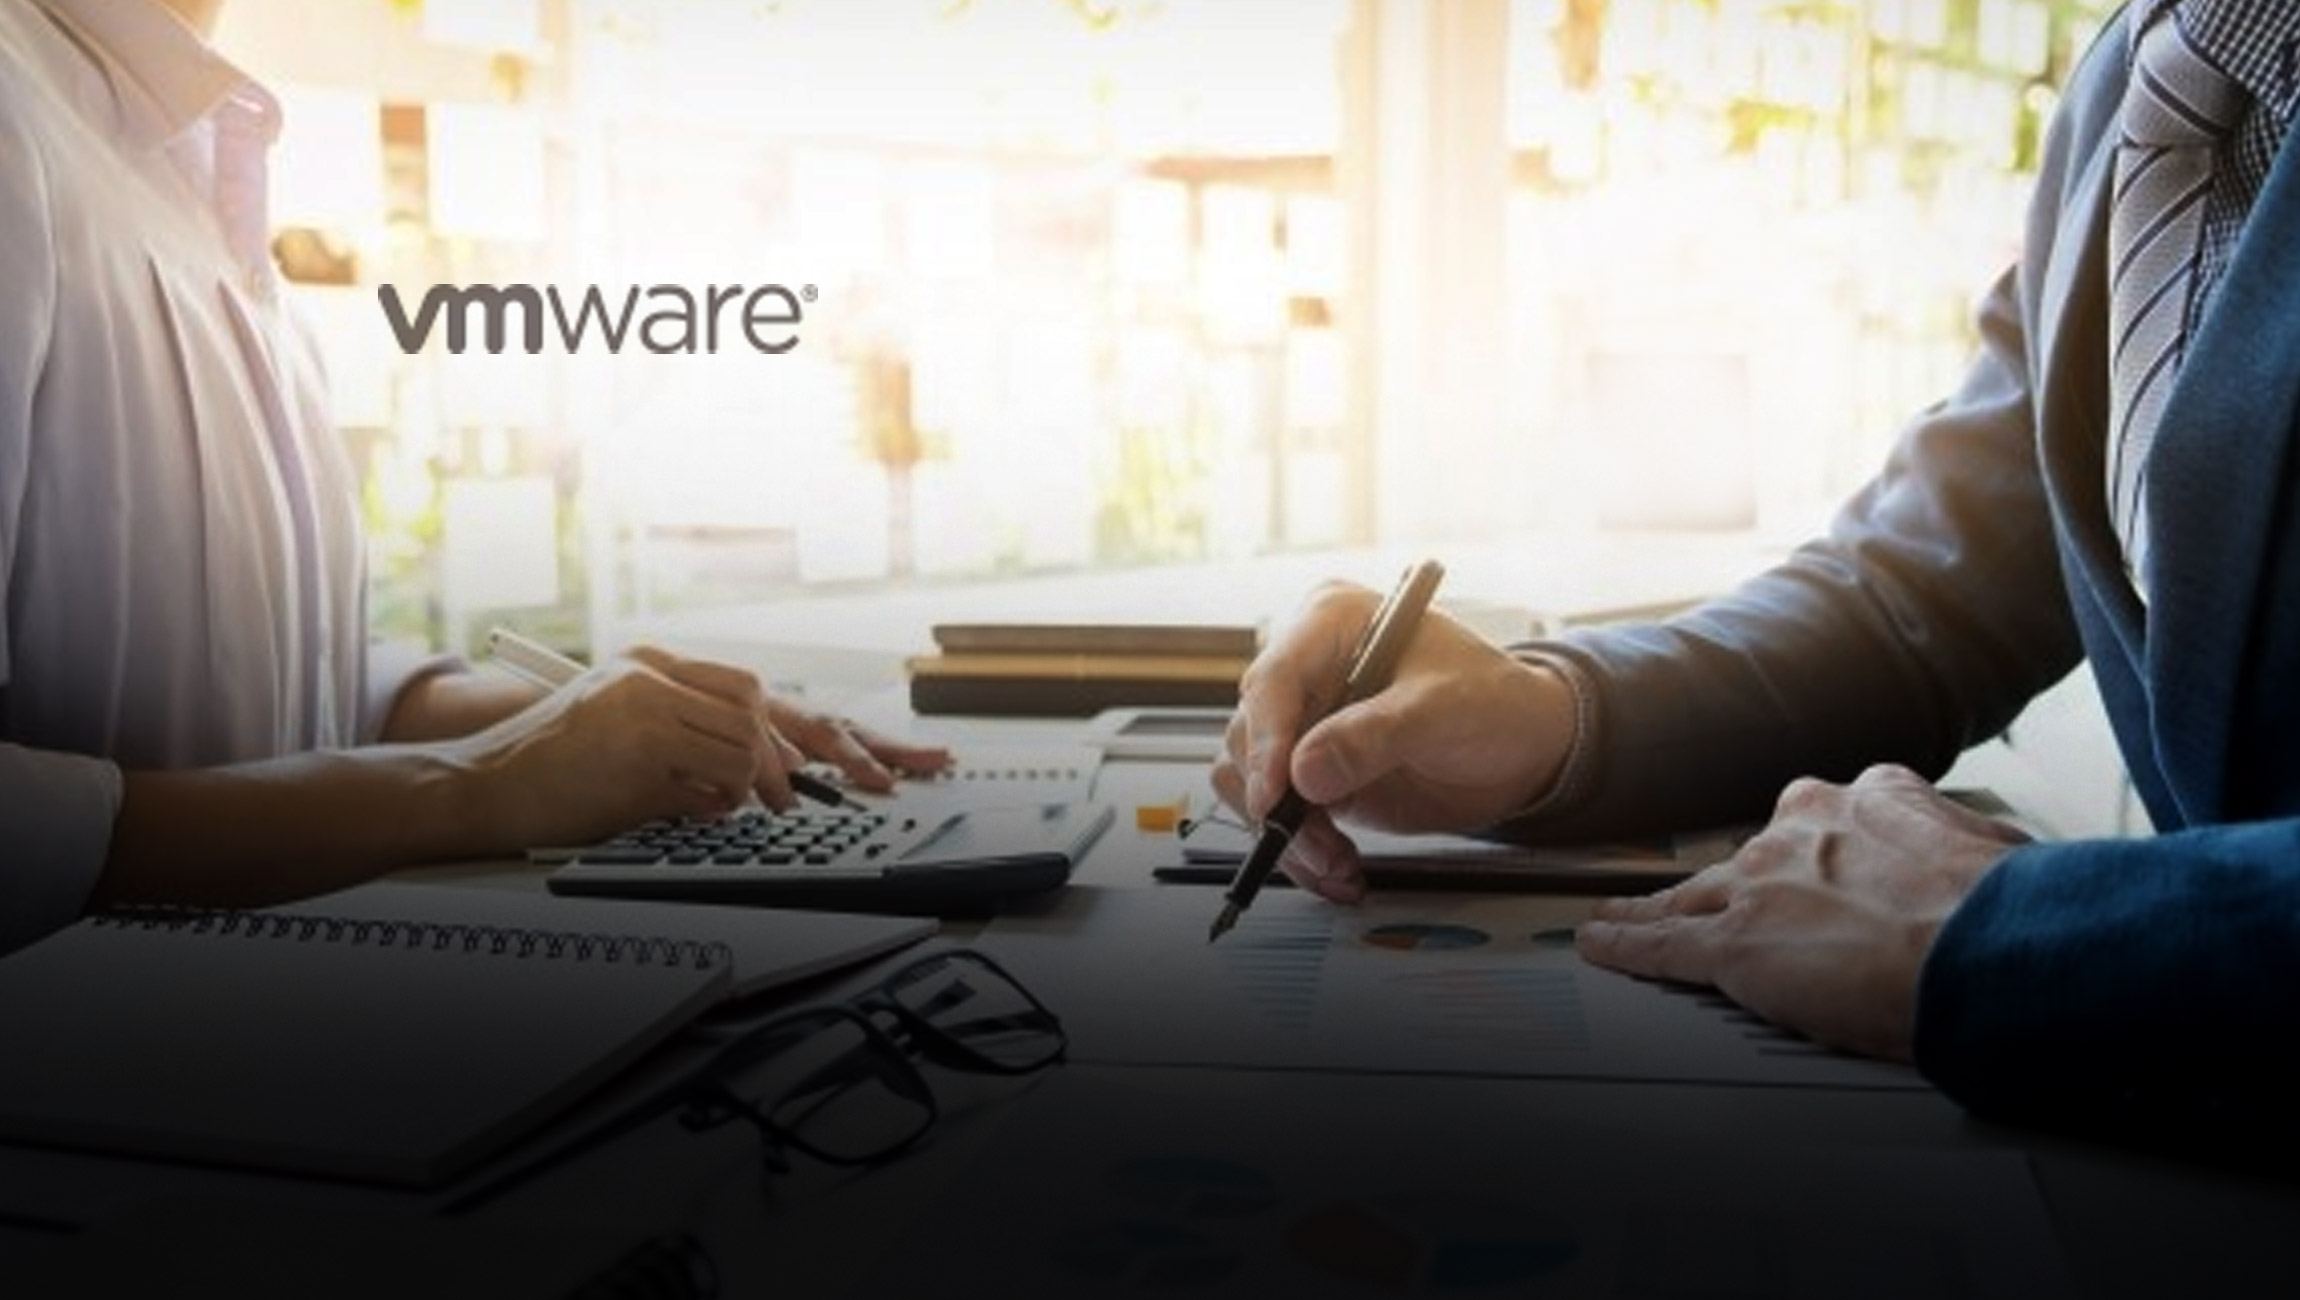 VMware Ranked No. 1 in Worldwide IT Automation and Configuration for Third Consecutive Year by Global Analyst Firm